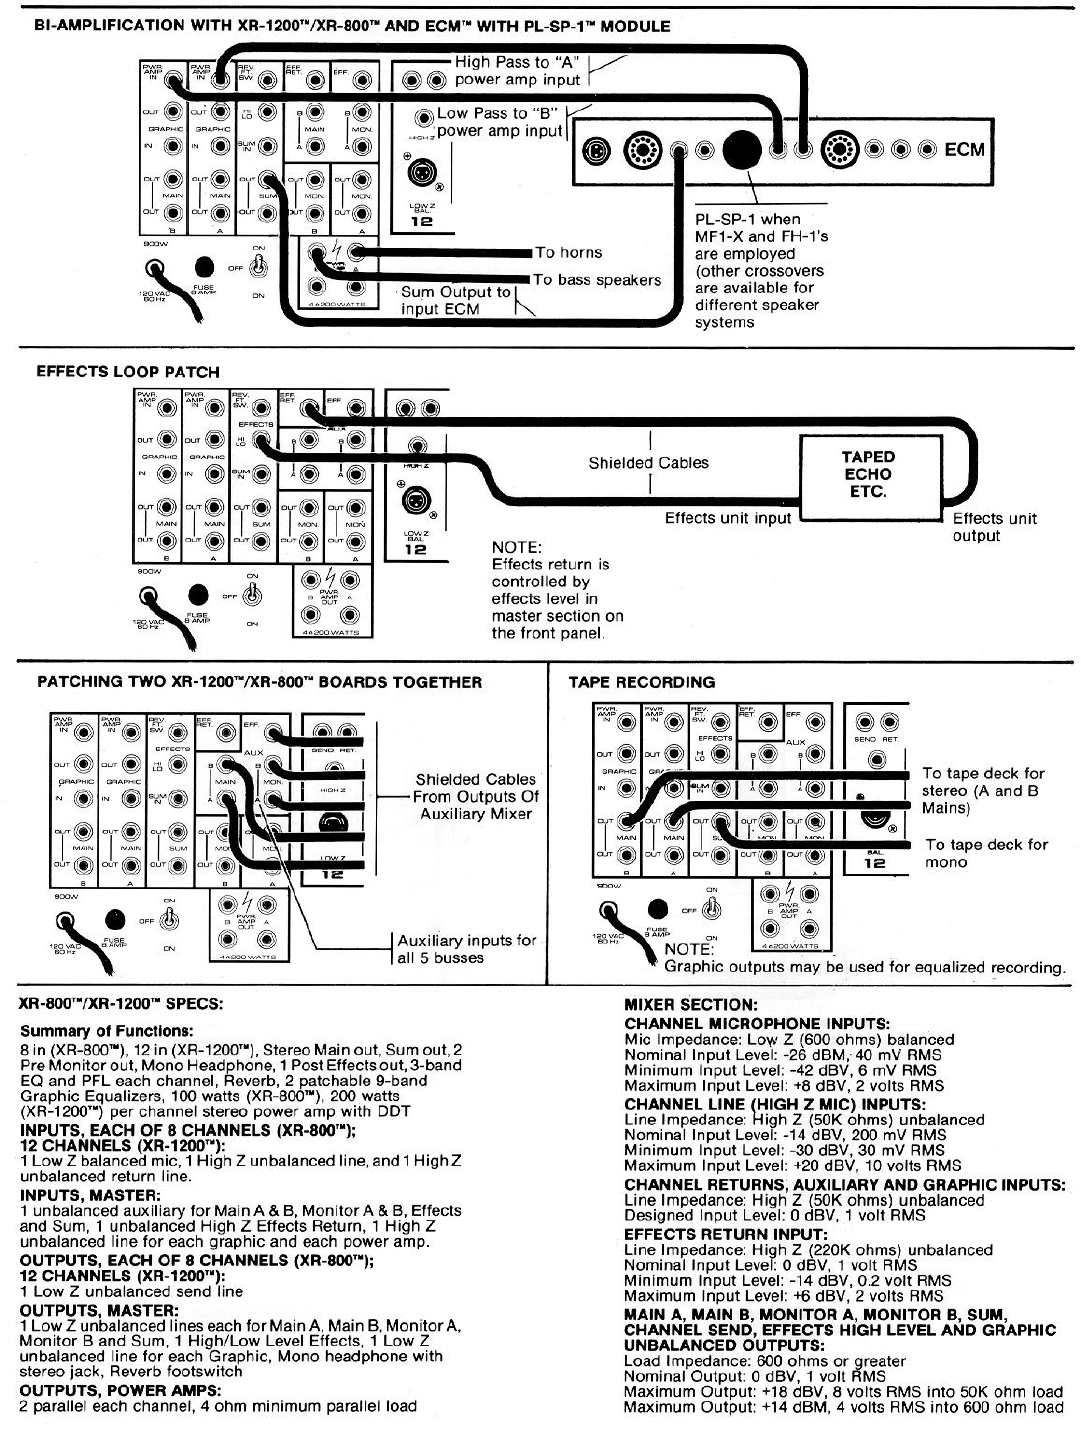 Attractive Peavey Tracer Wiring Schematic 90 S Vignette - Everything ...